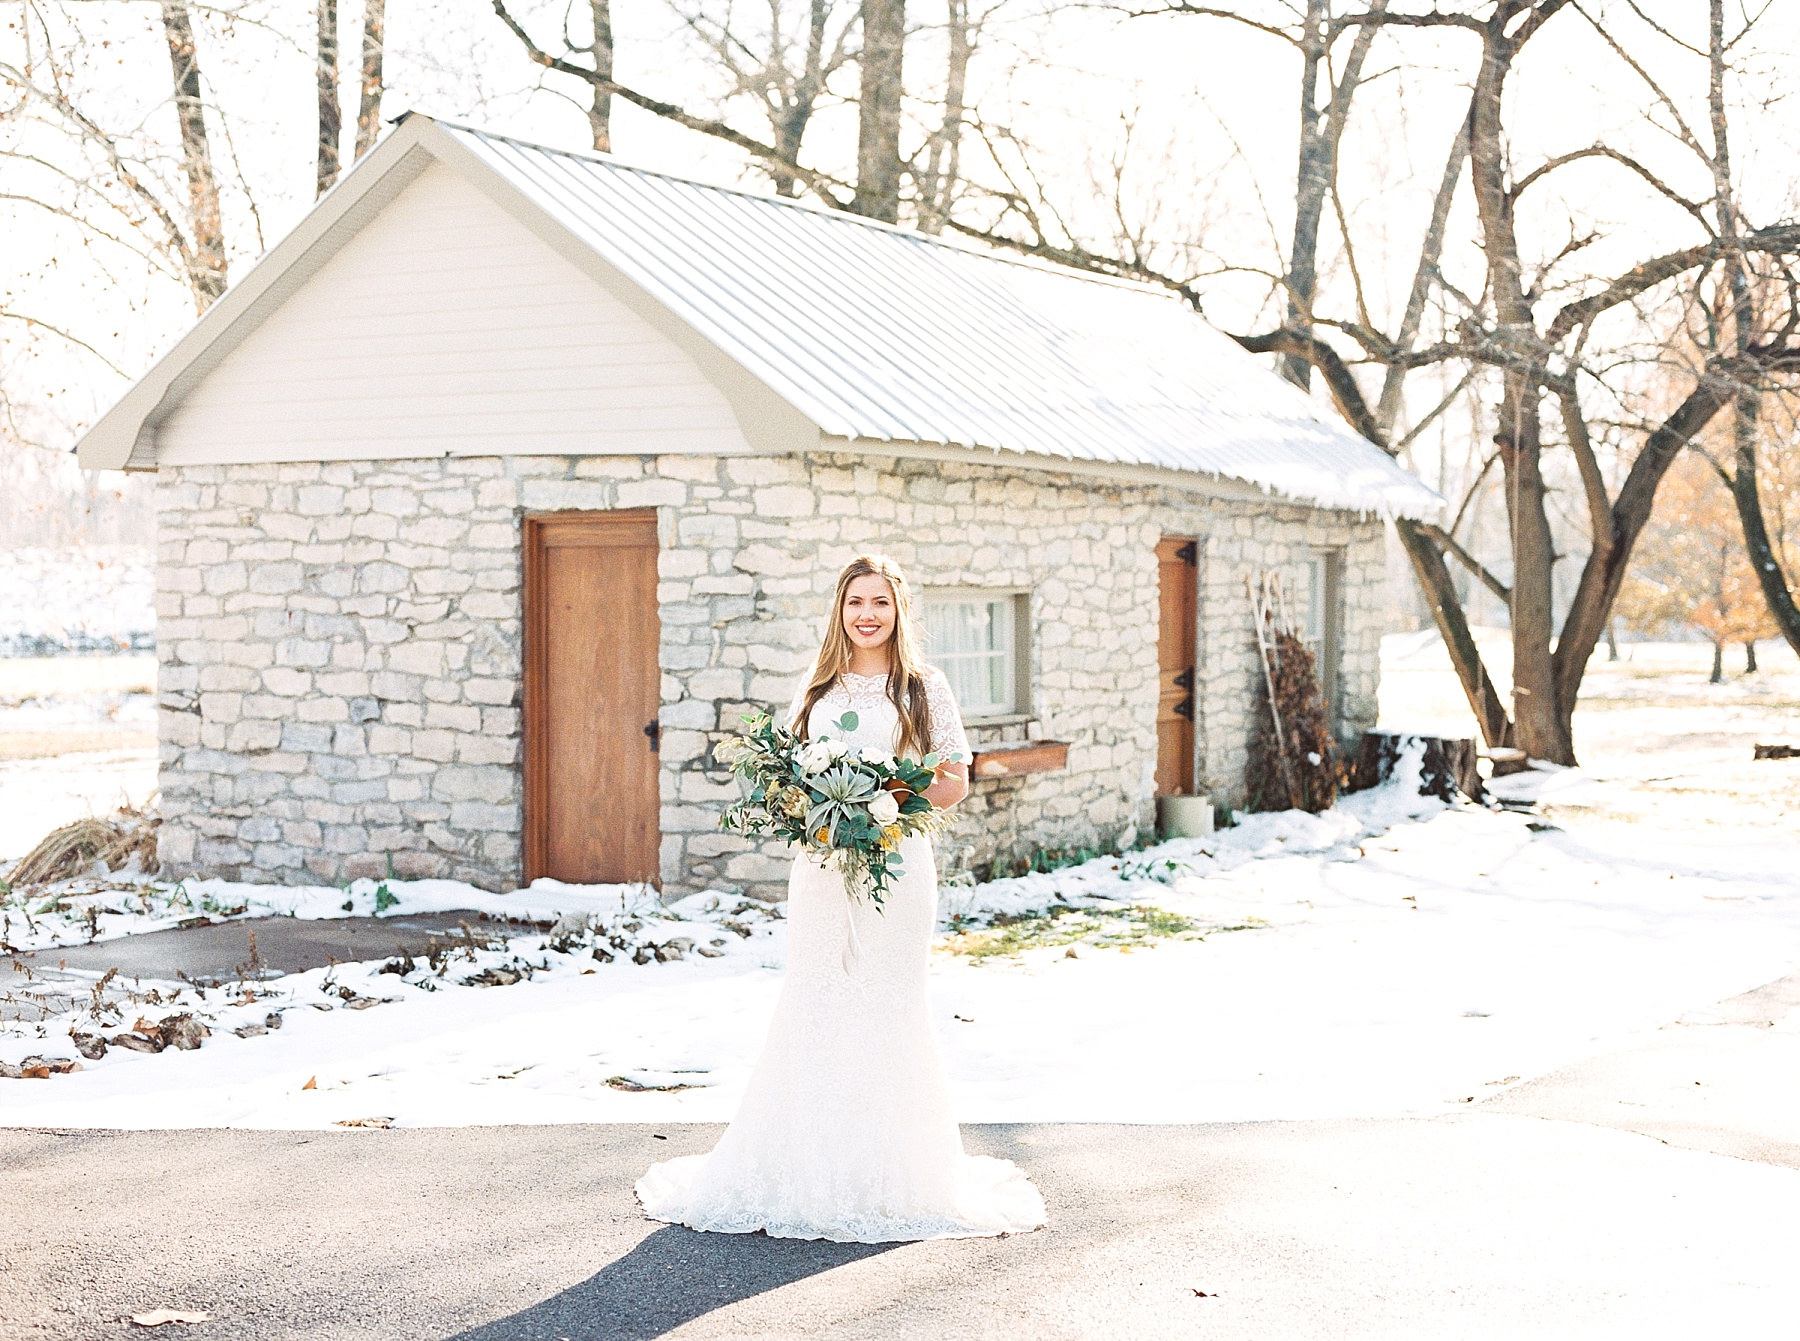 Snowy Winter Wedding at Wildcliff Events Lake With Earthy Jewel Tones and Organic Refined Style by Kelsi Kliethermes Photography Kansas City Missouri Wedding Photographer_0037.jpg